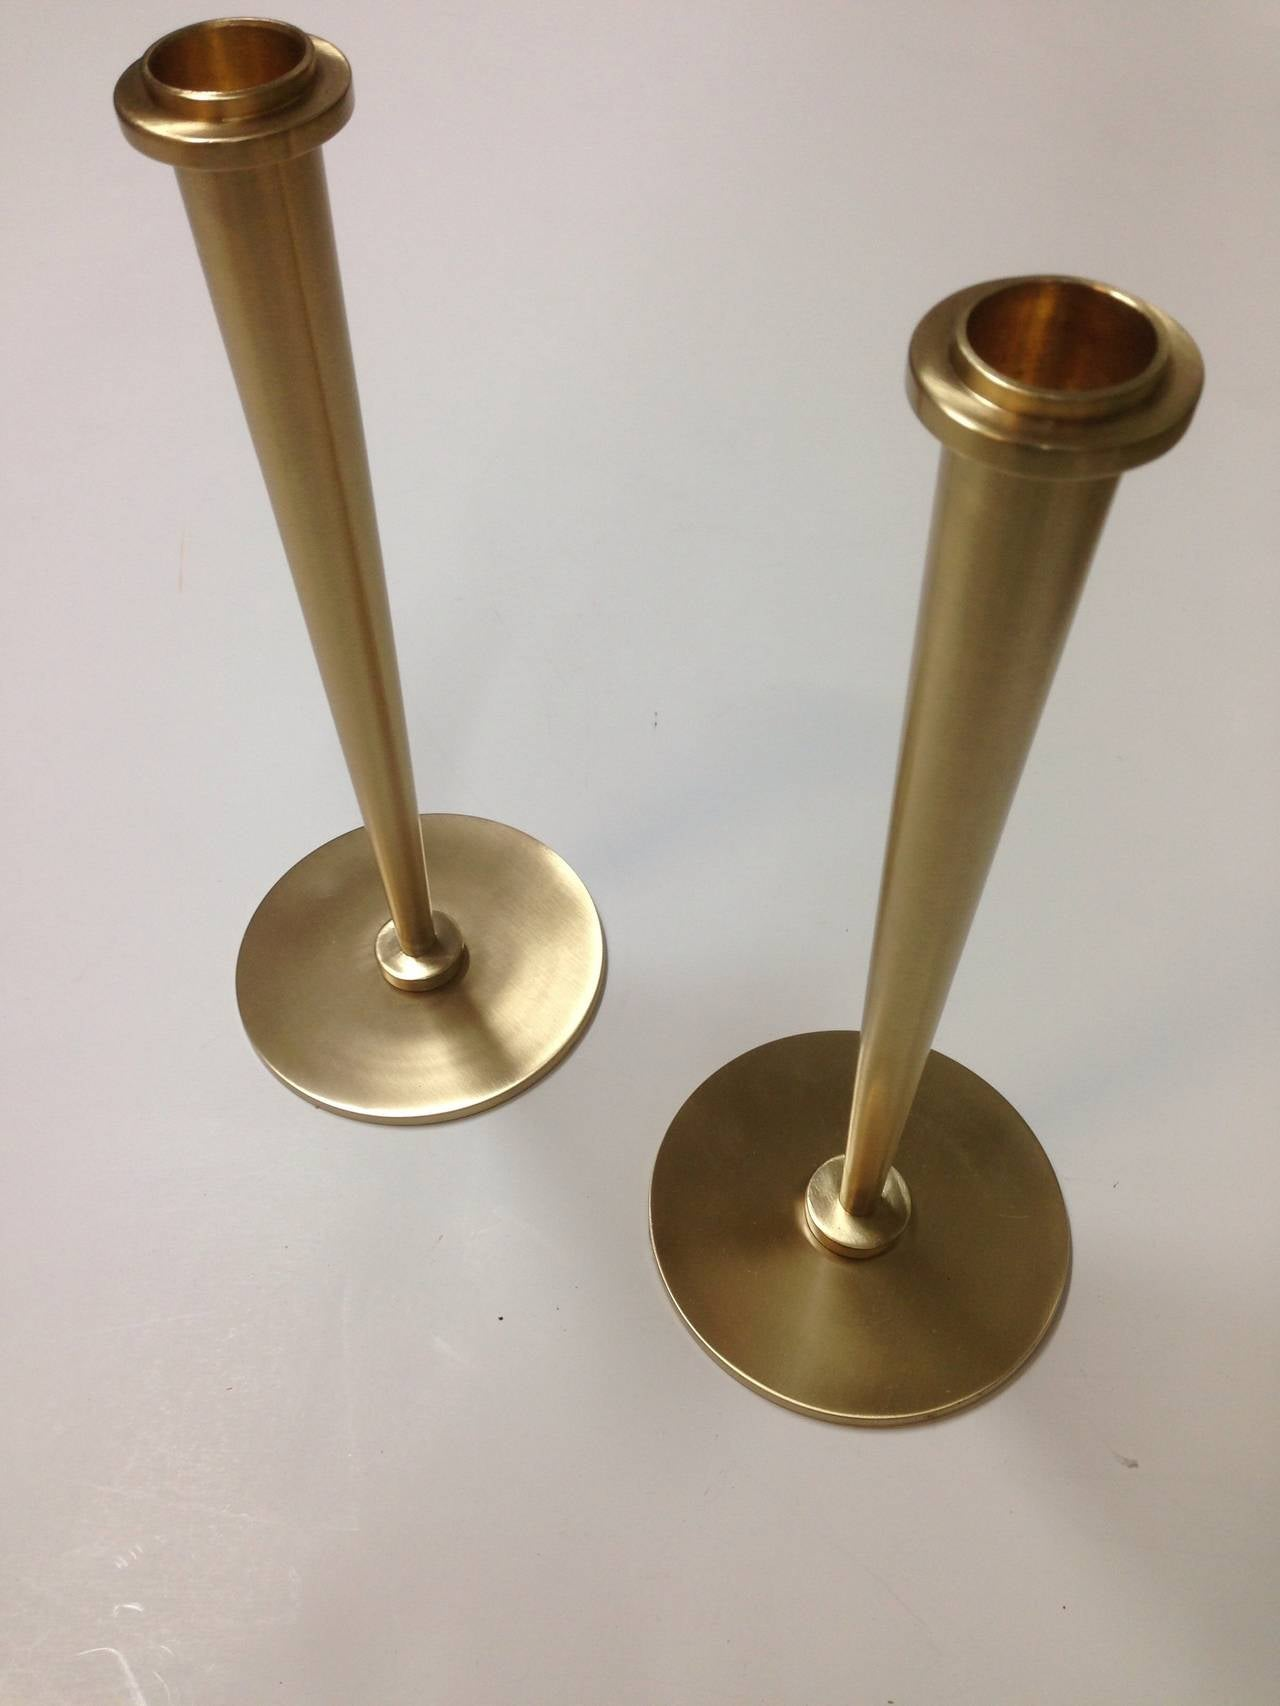 North American Pair of Candleholders in the Manner of Tommi Parzinger For Sale